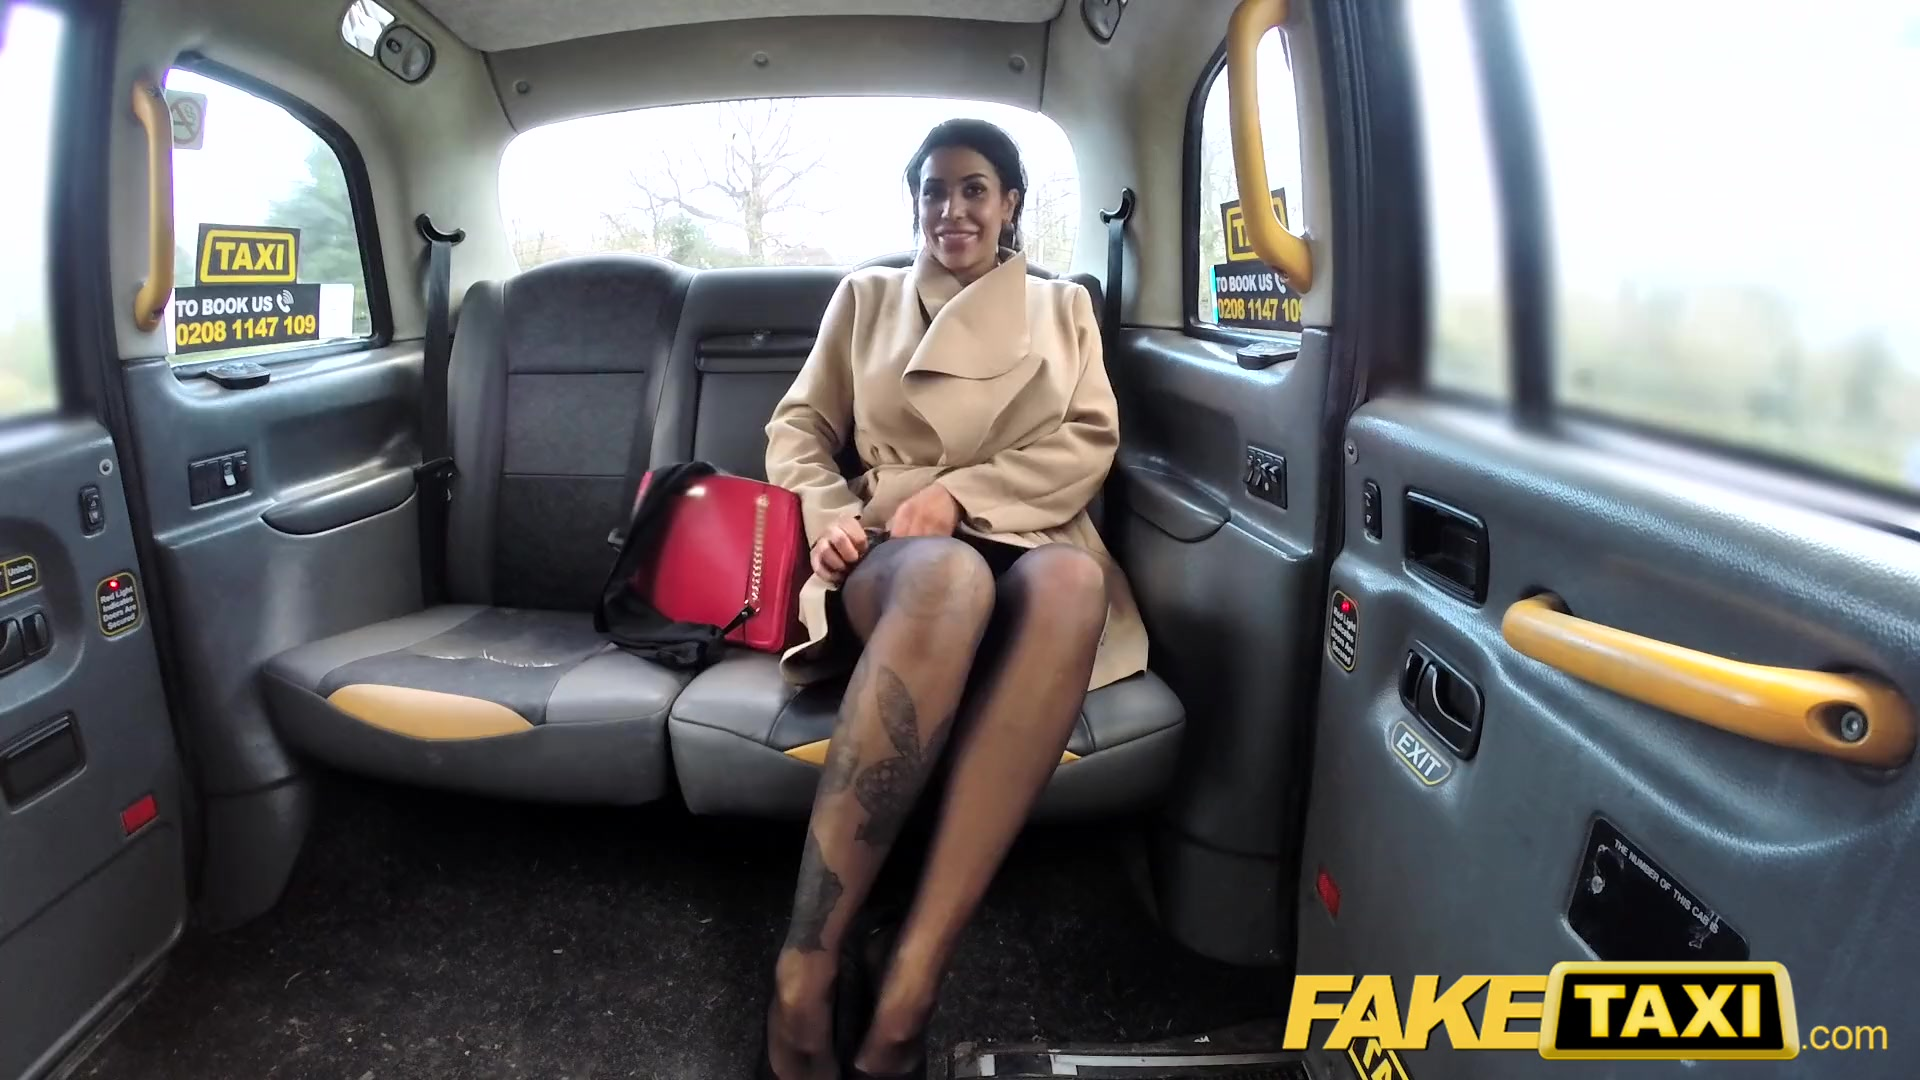 Fake Taxi - Tattoos Big Tits And Long Legs